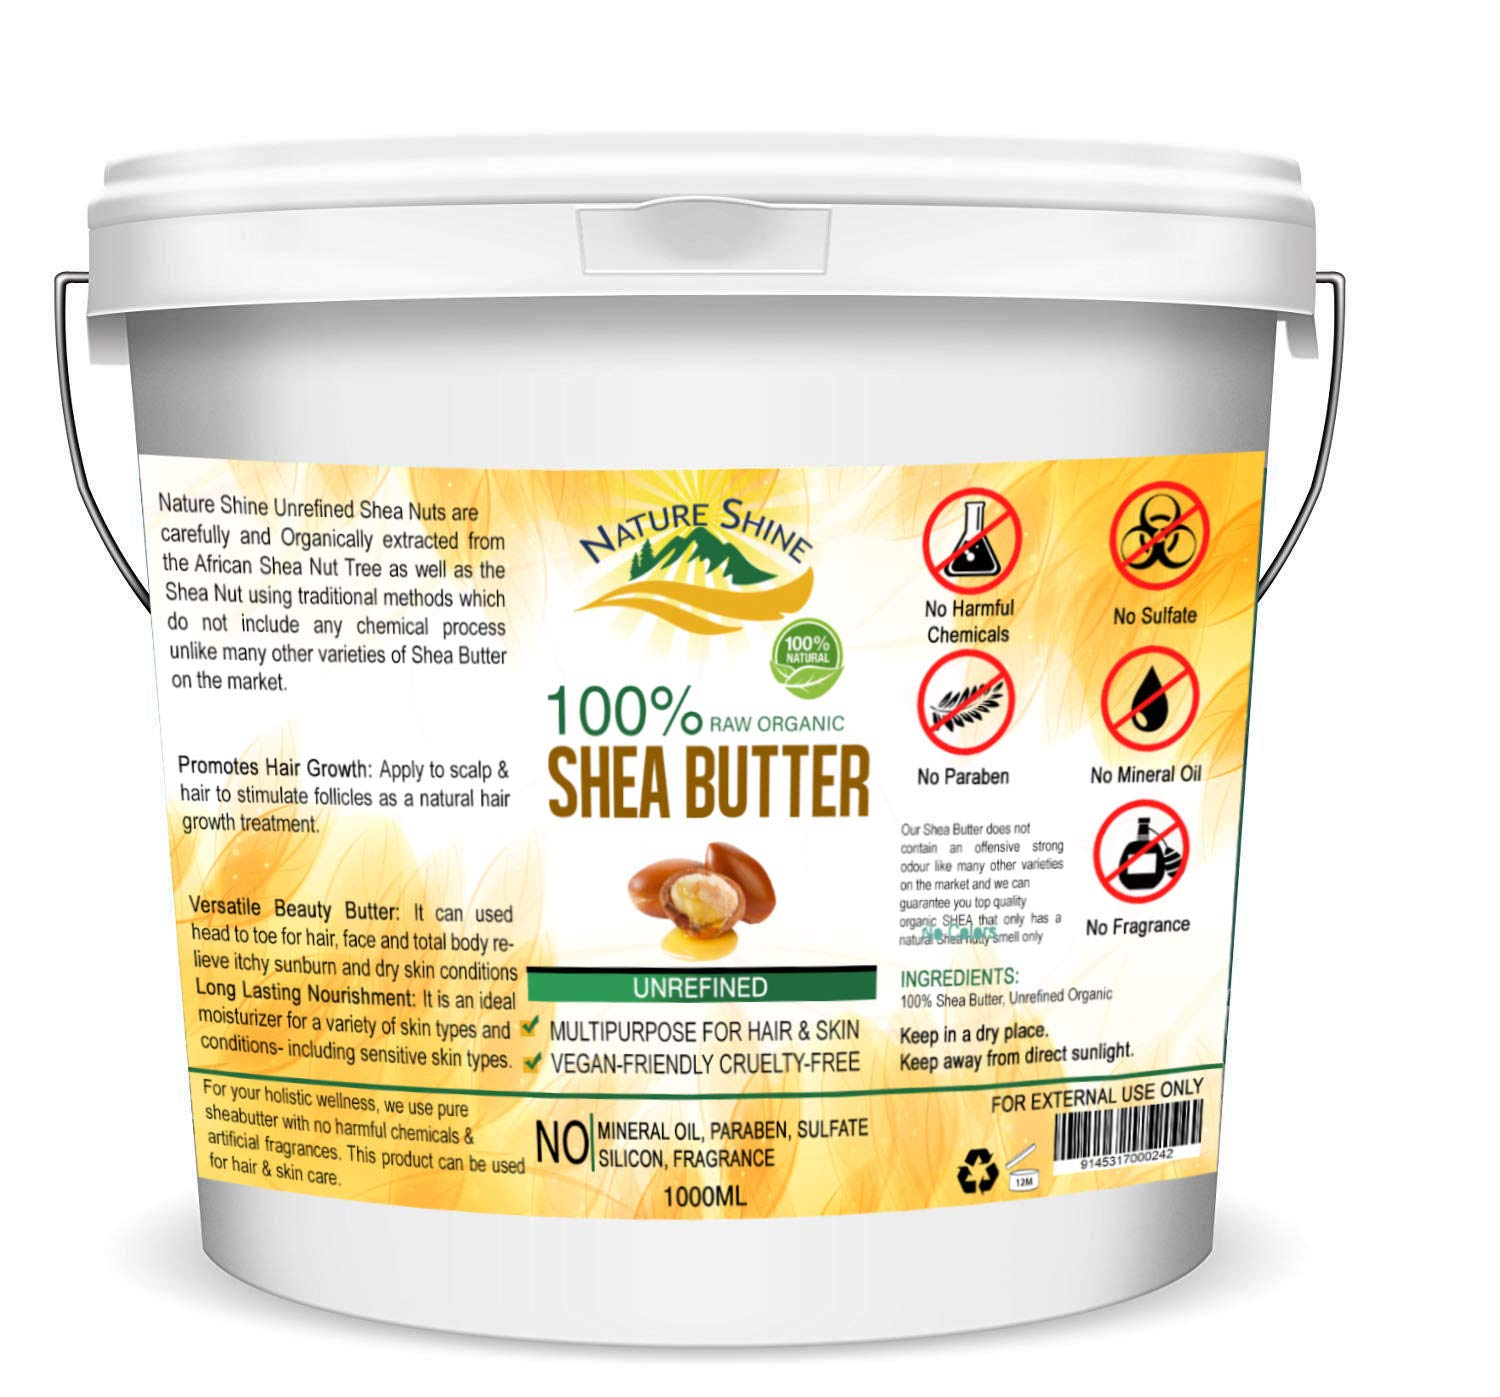 1KG Organic Shea Butter Unrefined 100% Pure, Raw & Natural Certified Organic A Grade African Shea Body Butter Moisturiser Cream Lotion for All Skin Face Hair Type